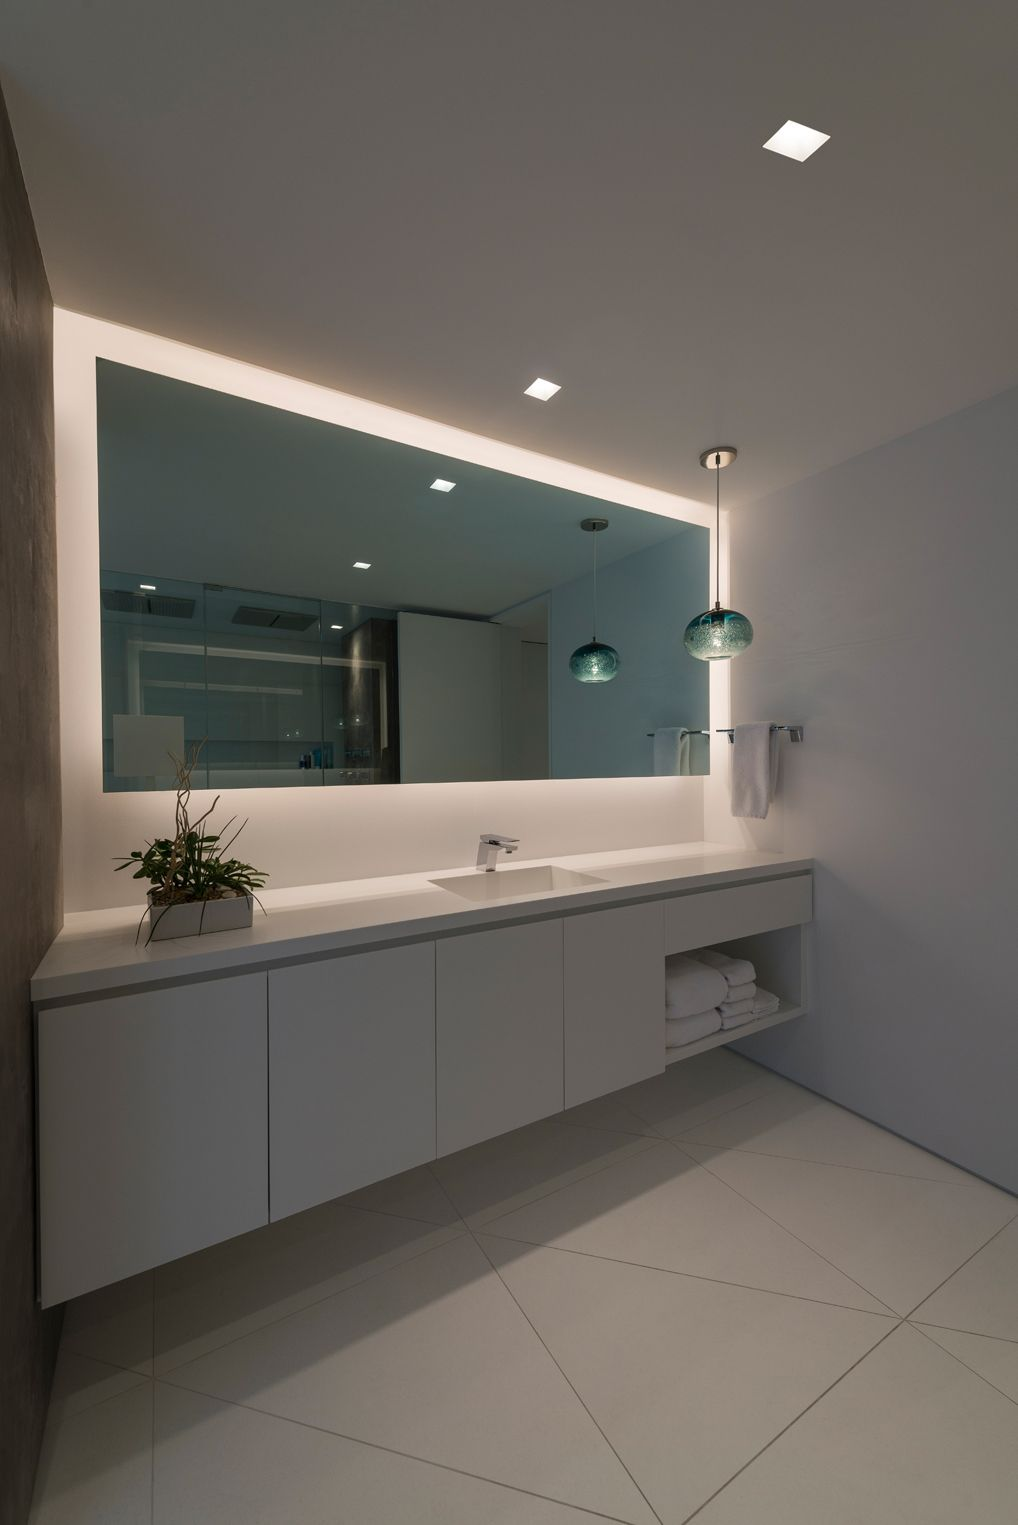 Recessed Square LEDs Allow For A Serene Environment While Adding To The Modern Architecture Of Room LED Lighting Bathroom Aurora Dual